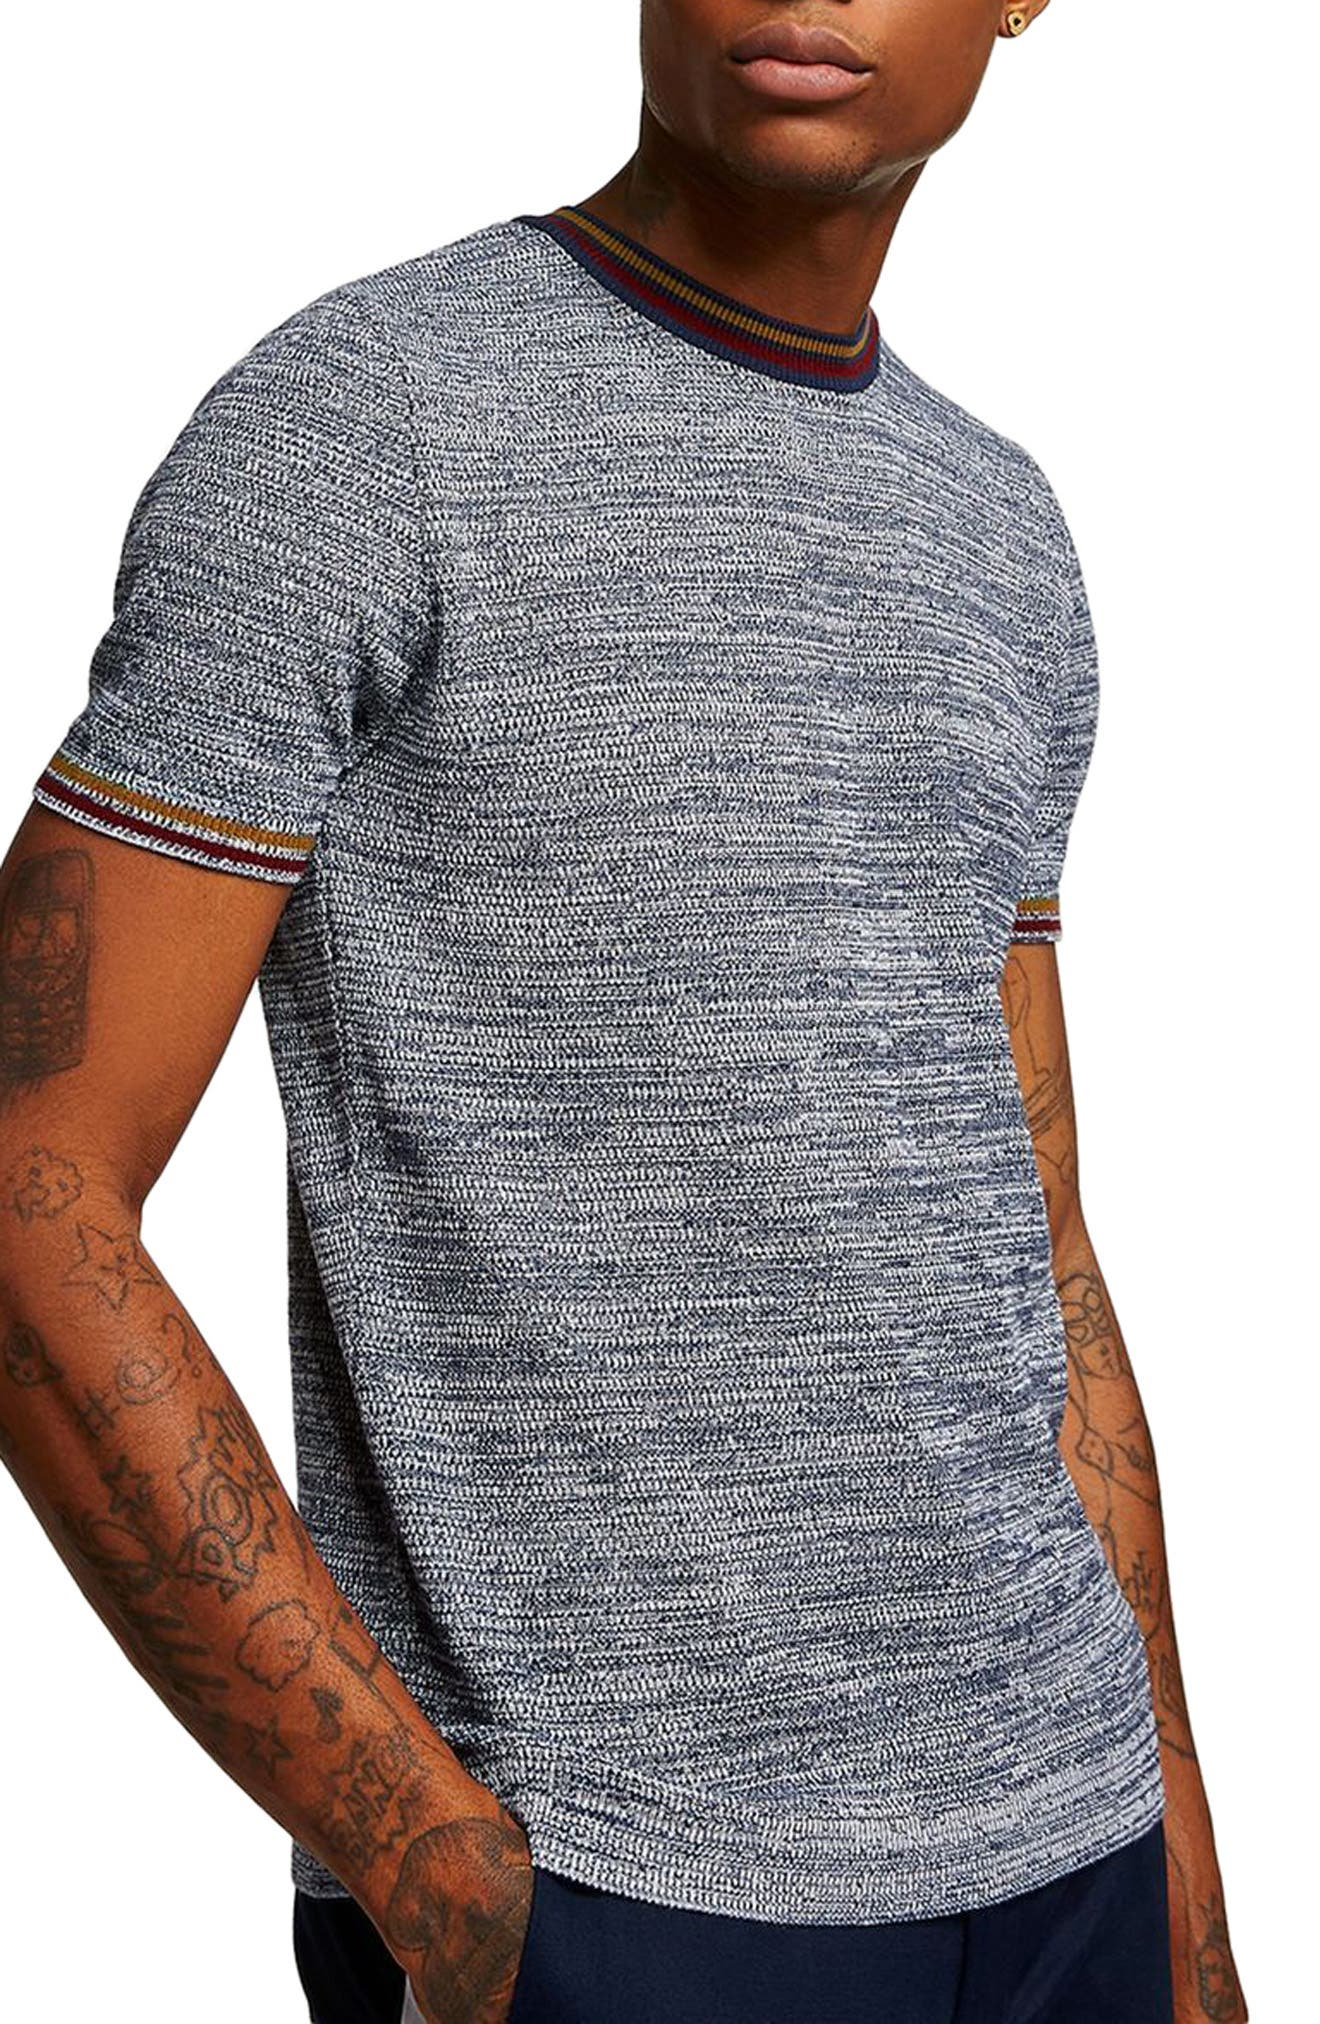 Slim Fit Knit T-Shirt,                             Main thumbnail 1, color,                             020